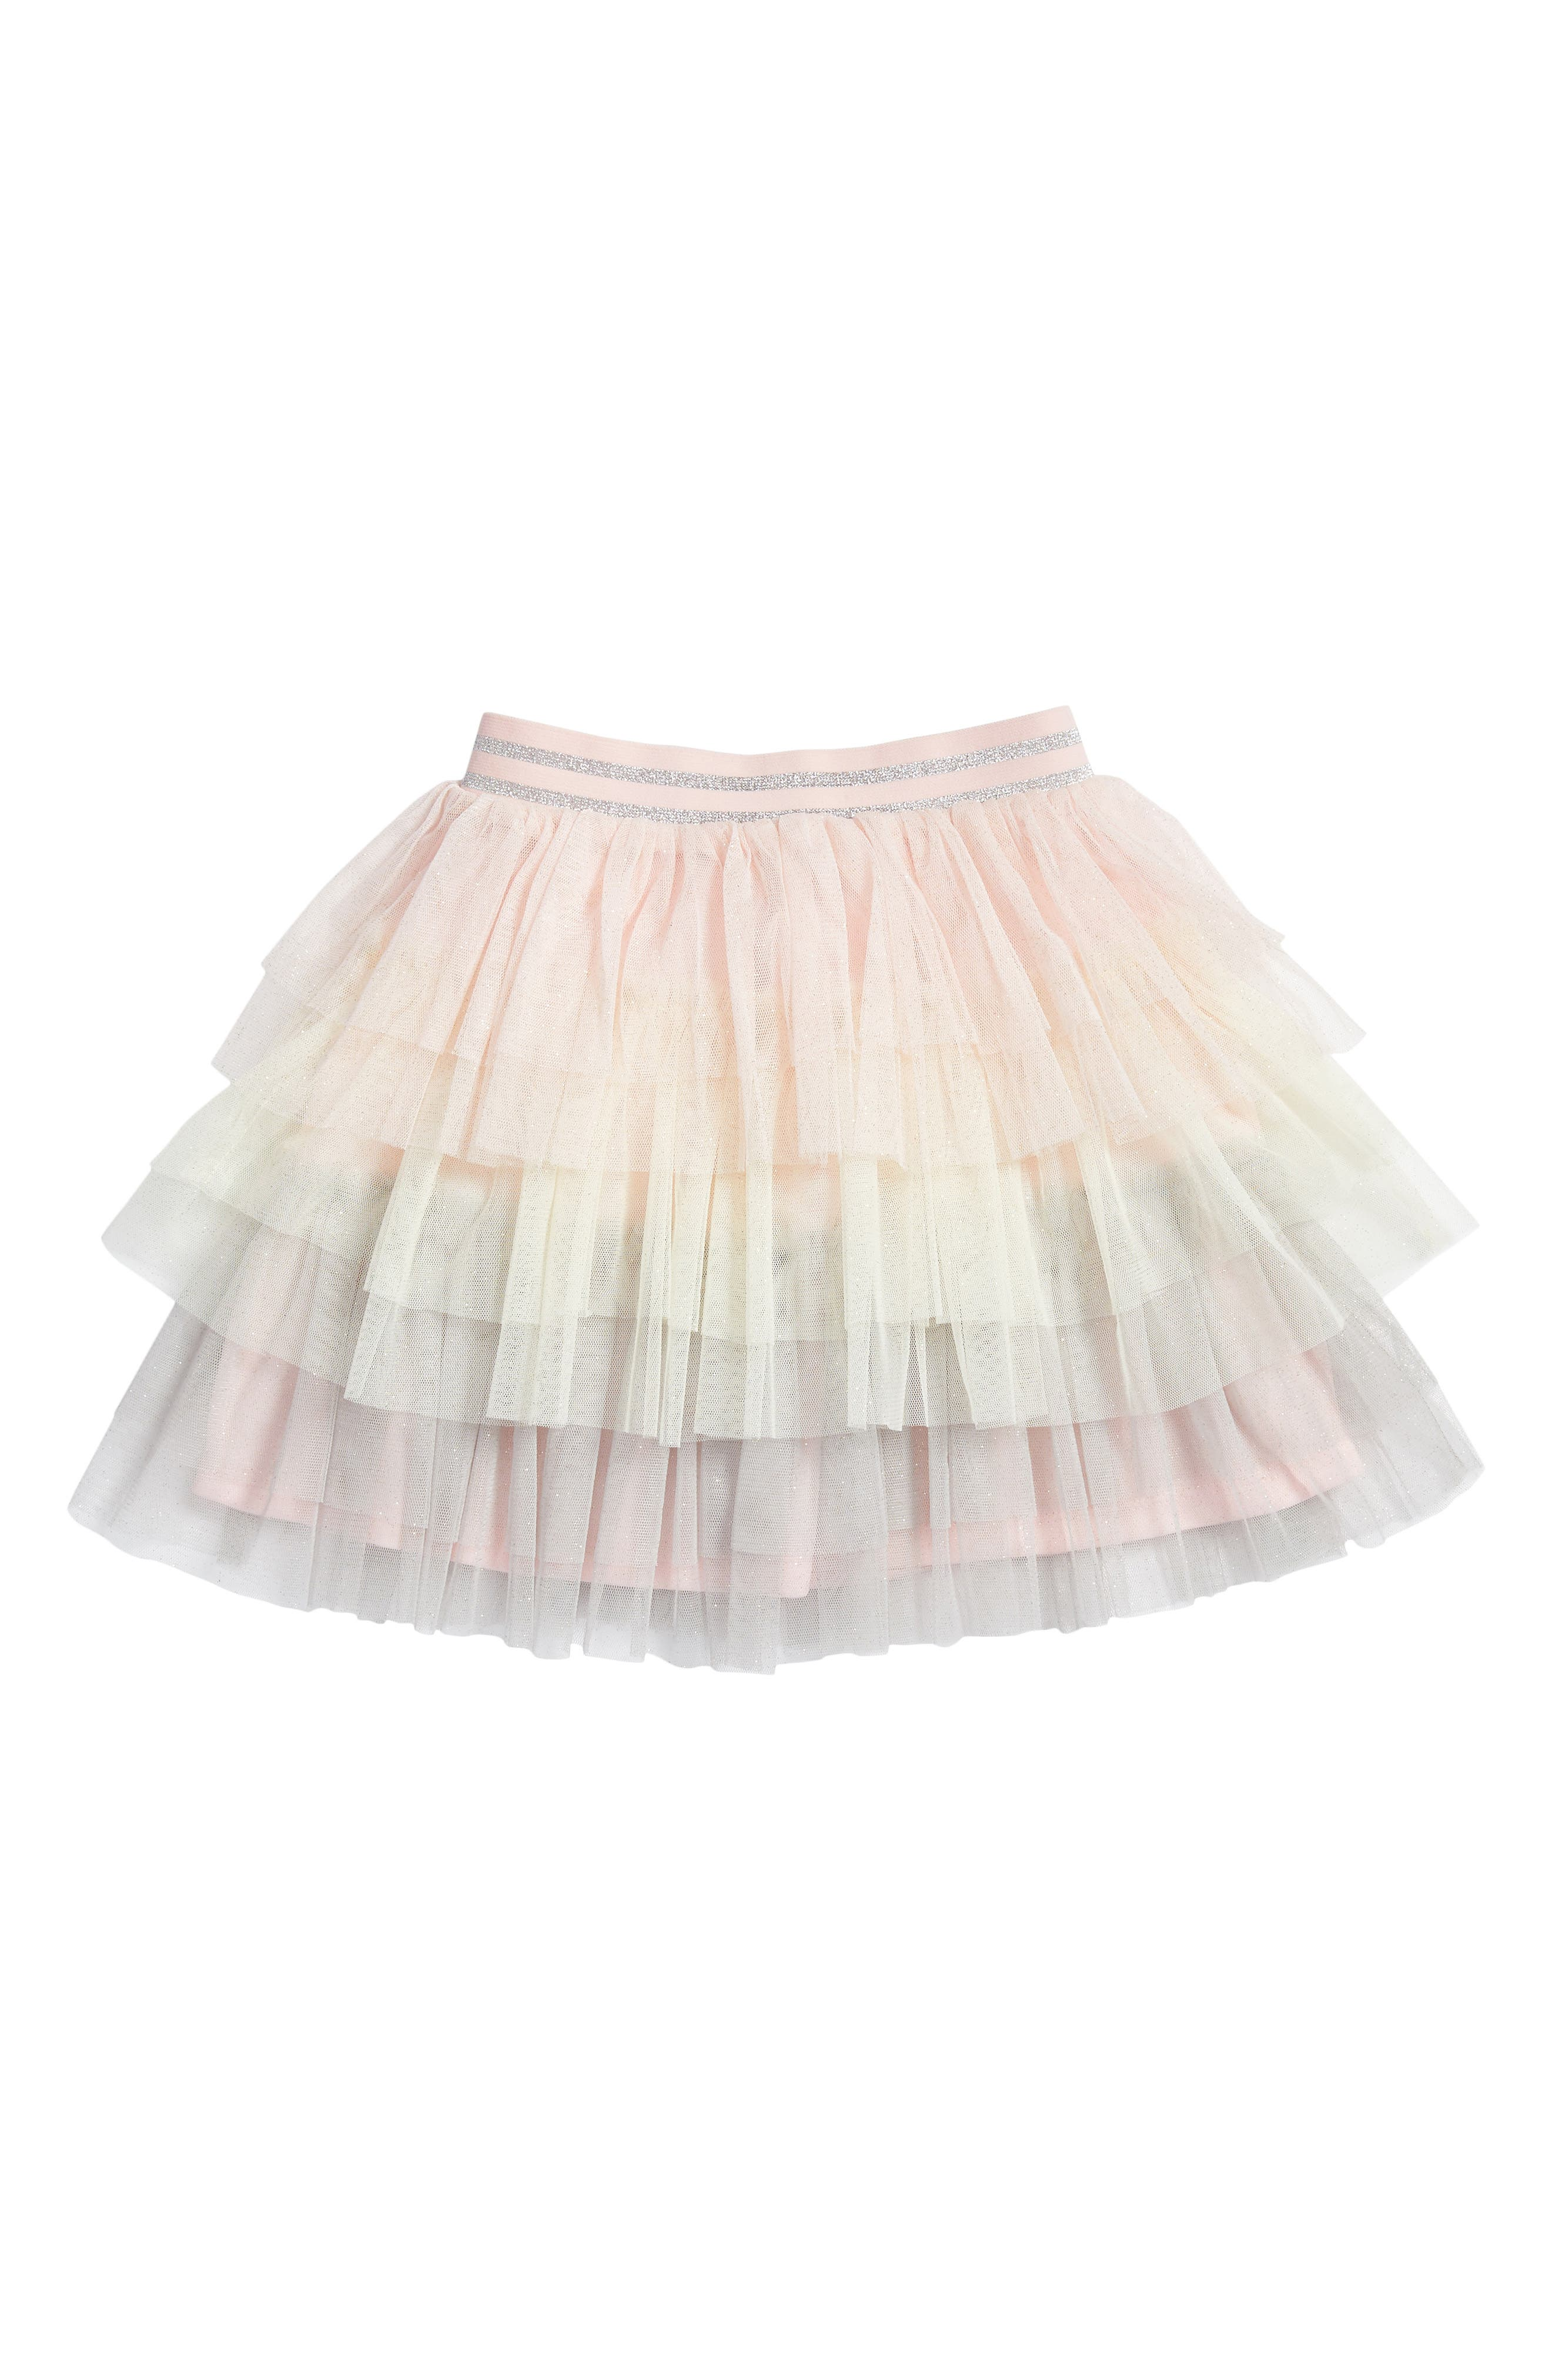 Main Image - Truly Me Tiered Tutu Skirt (Toddler Girls & Little Girls)